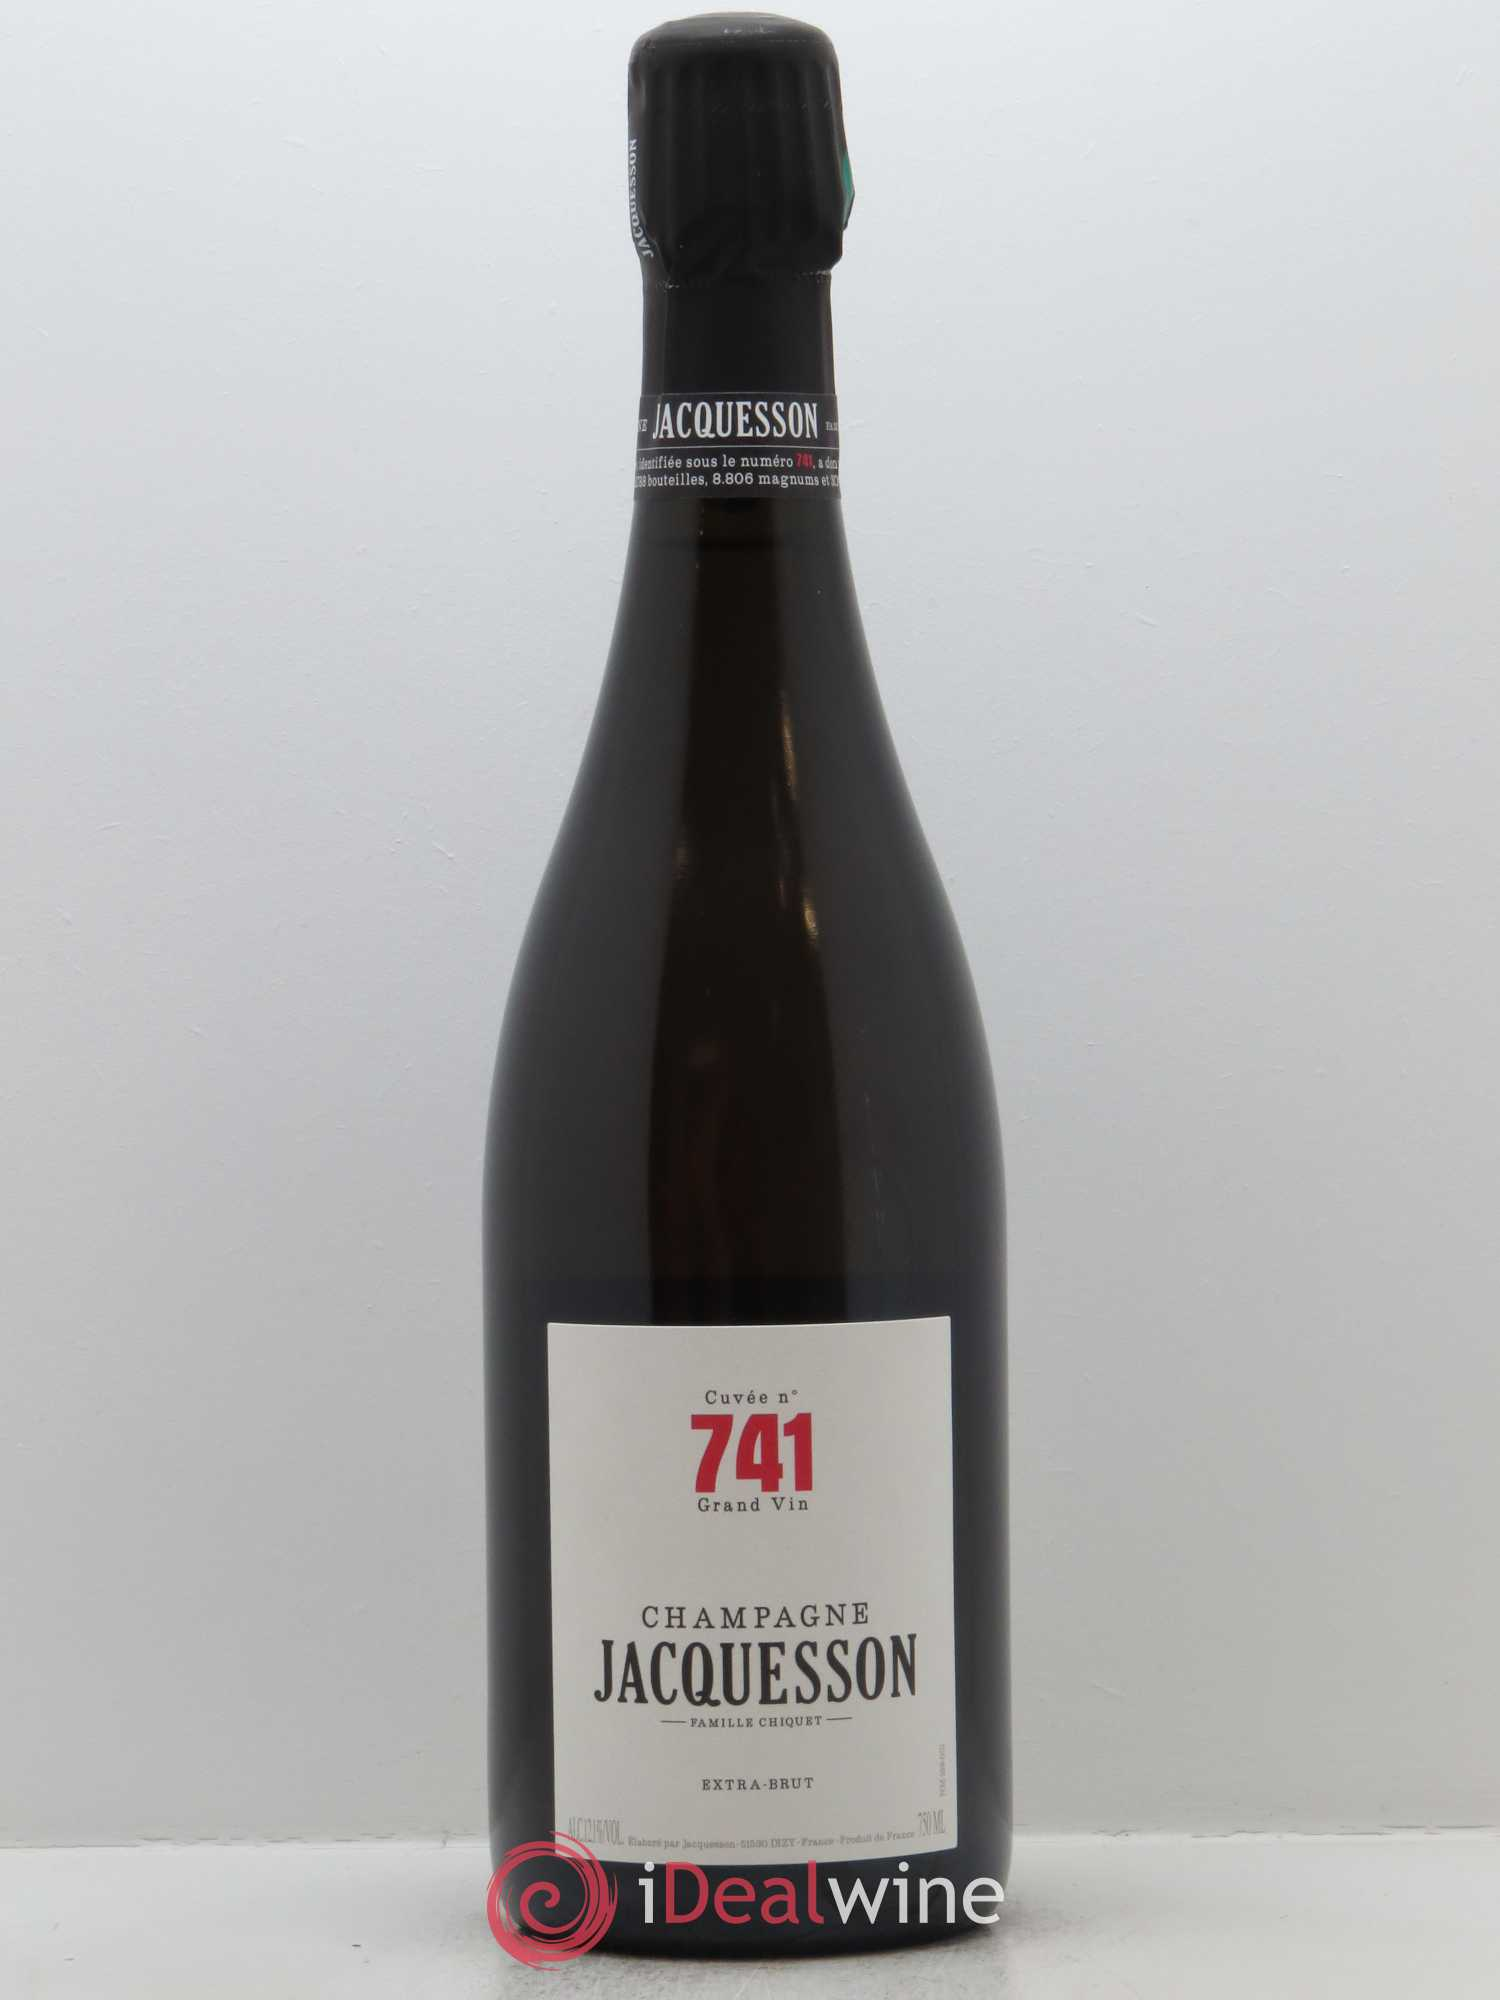 Cuvée 741 Jacquesson   - Lot of 1 Bottle